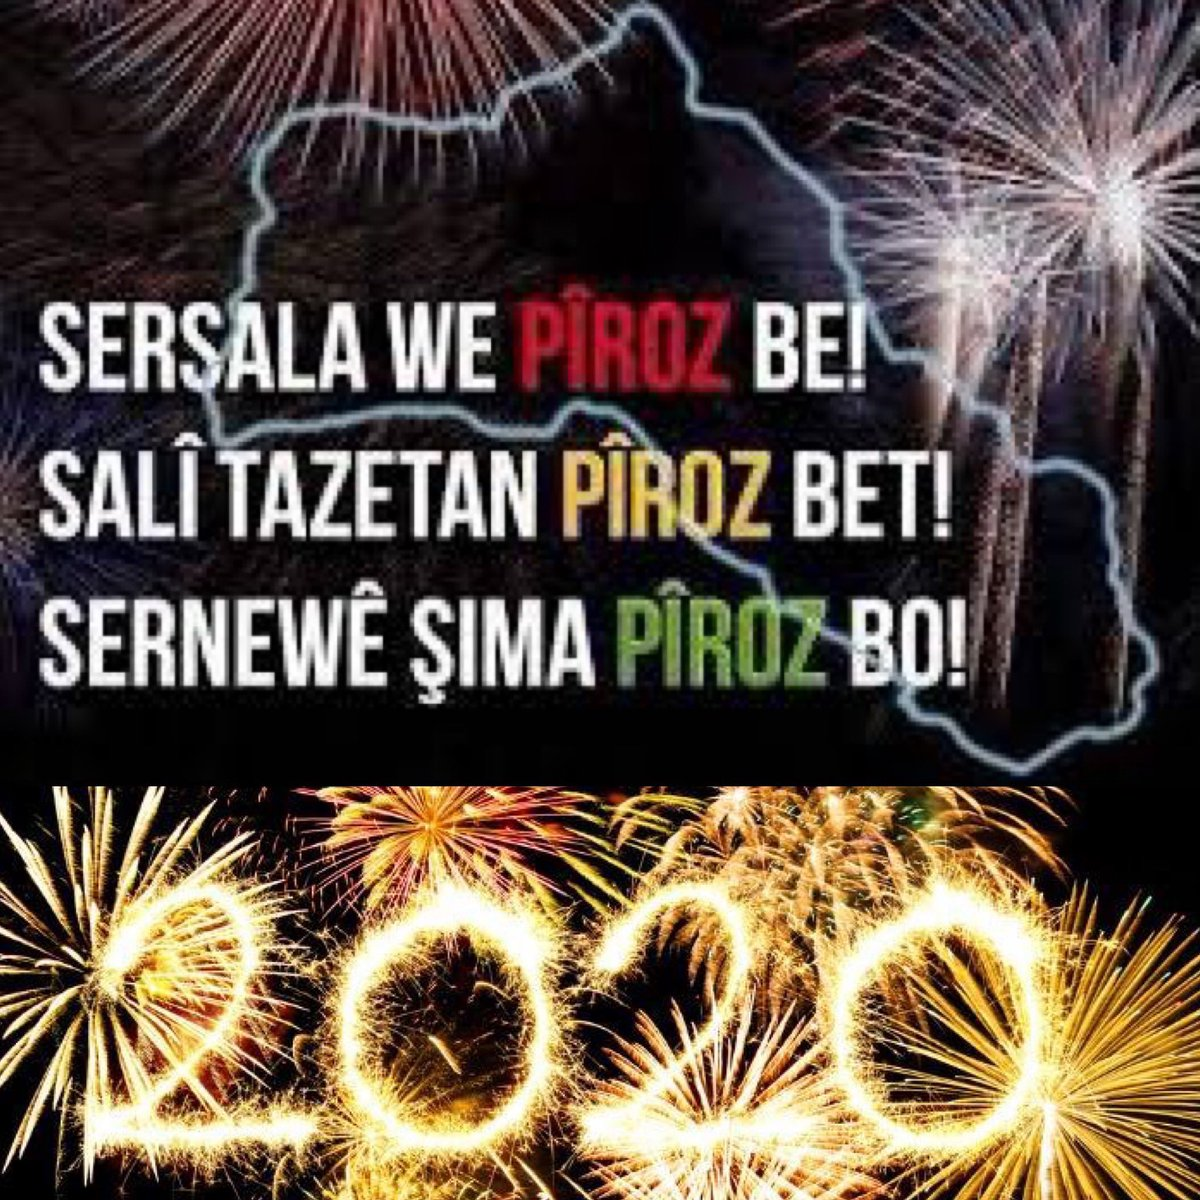 Sersala we pîroz be! Happy New Year! Bonne Année! Felice anno Nuovo! Gott nytt år! 🙏🏽❤️☀️💚🙌🏽🎉🔥😄❄️💥🌟 🙌🏽😘😘😘